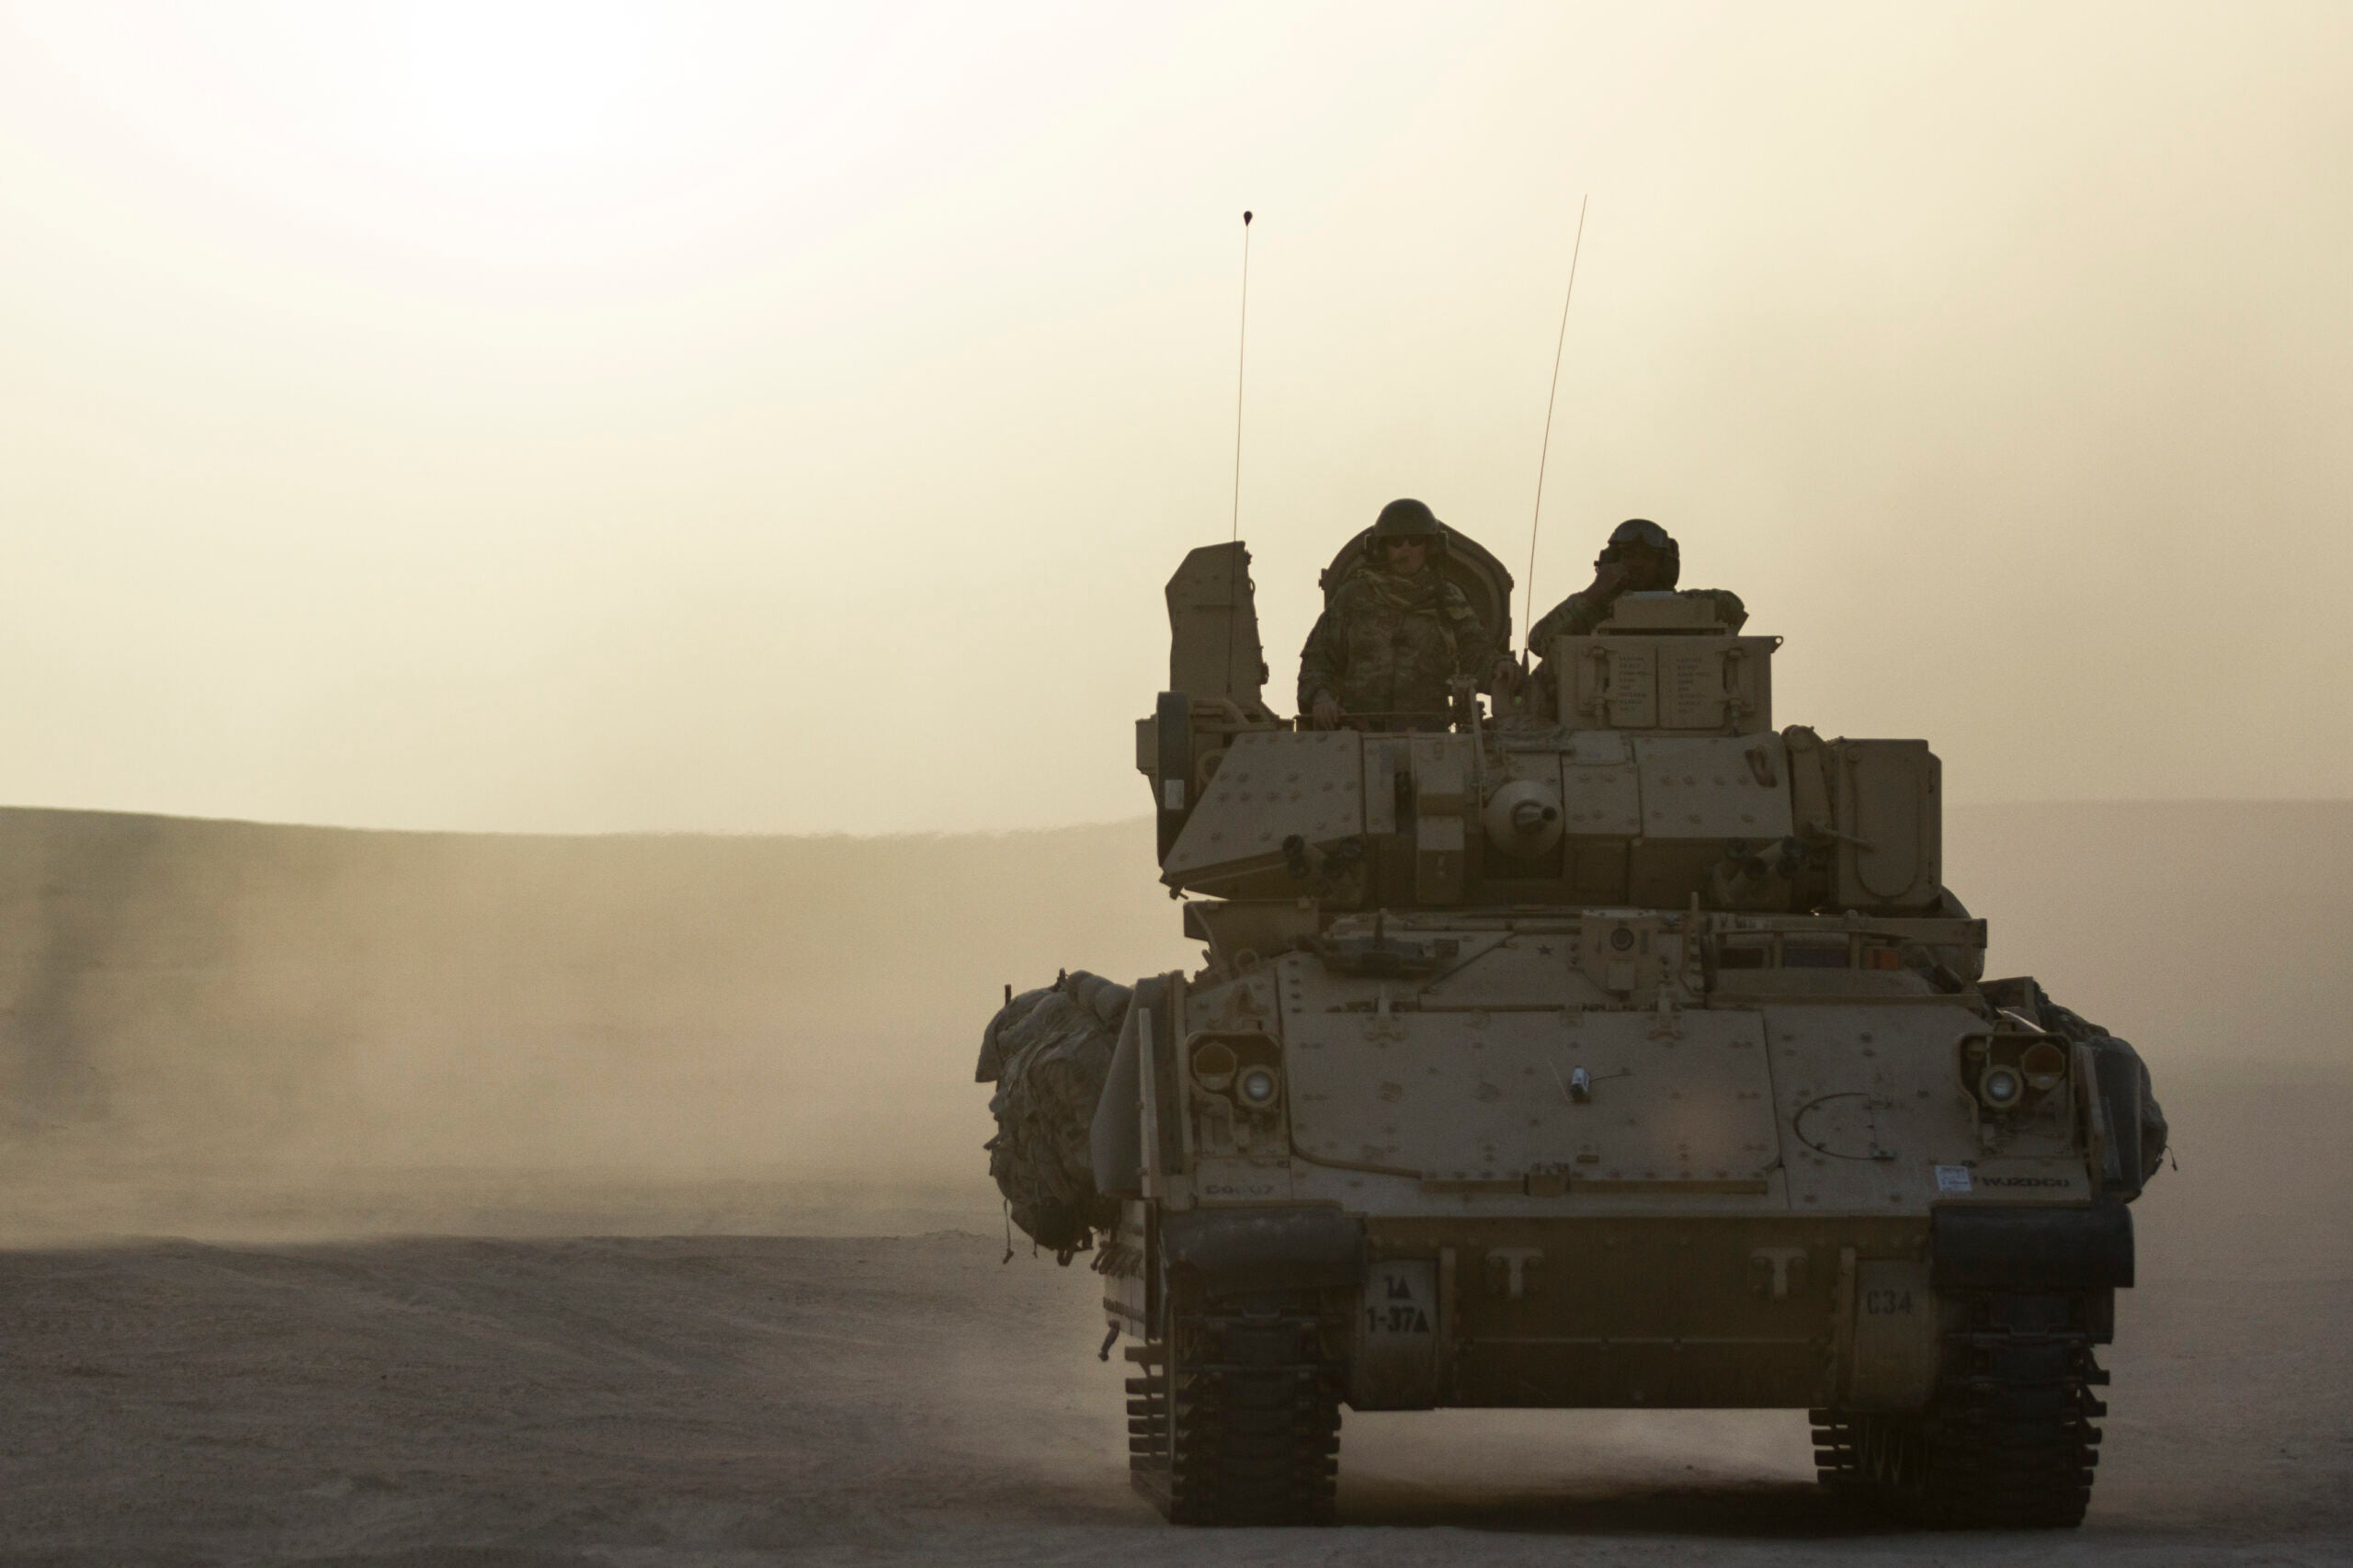 The US is sending Bradley Fighting Vehicles back into Syria for additional force protection